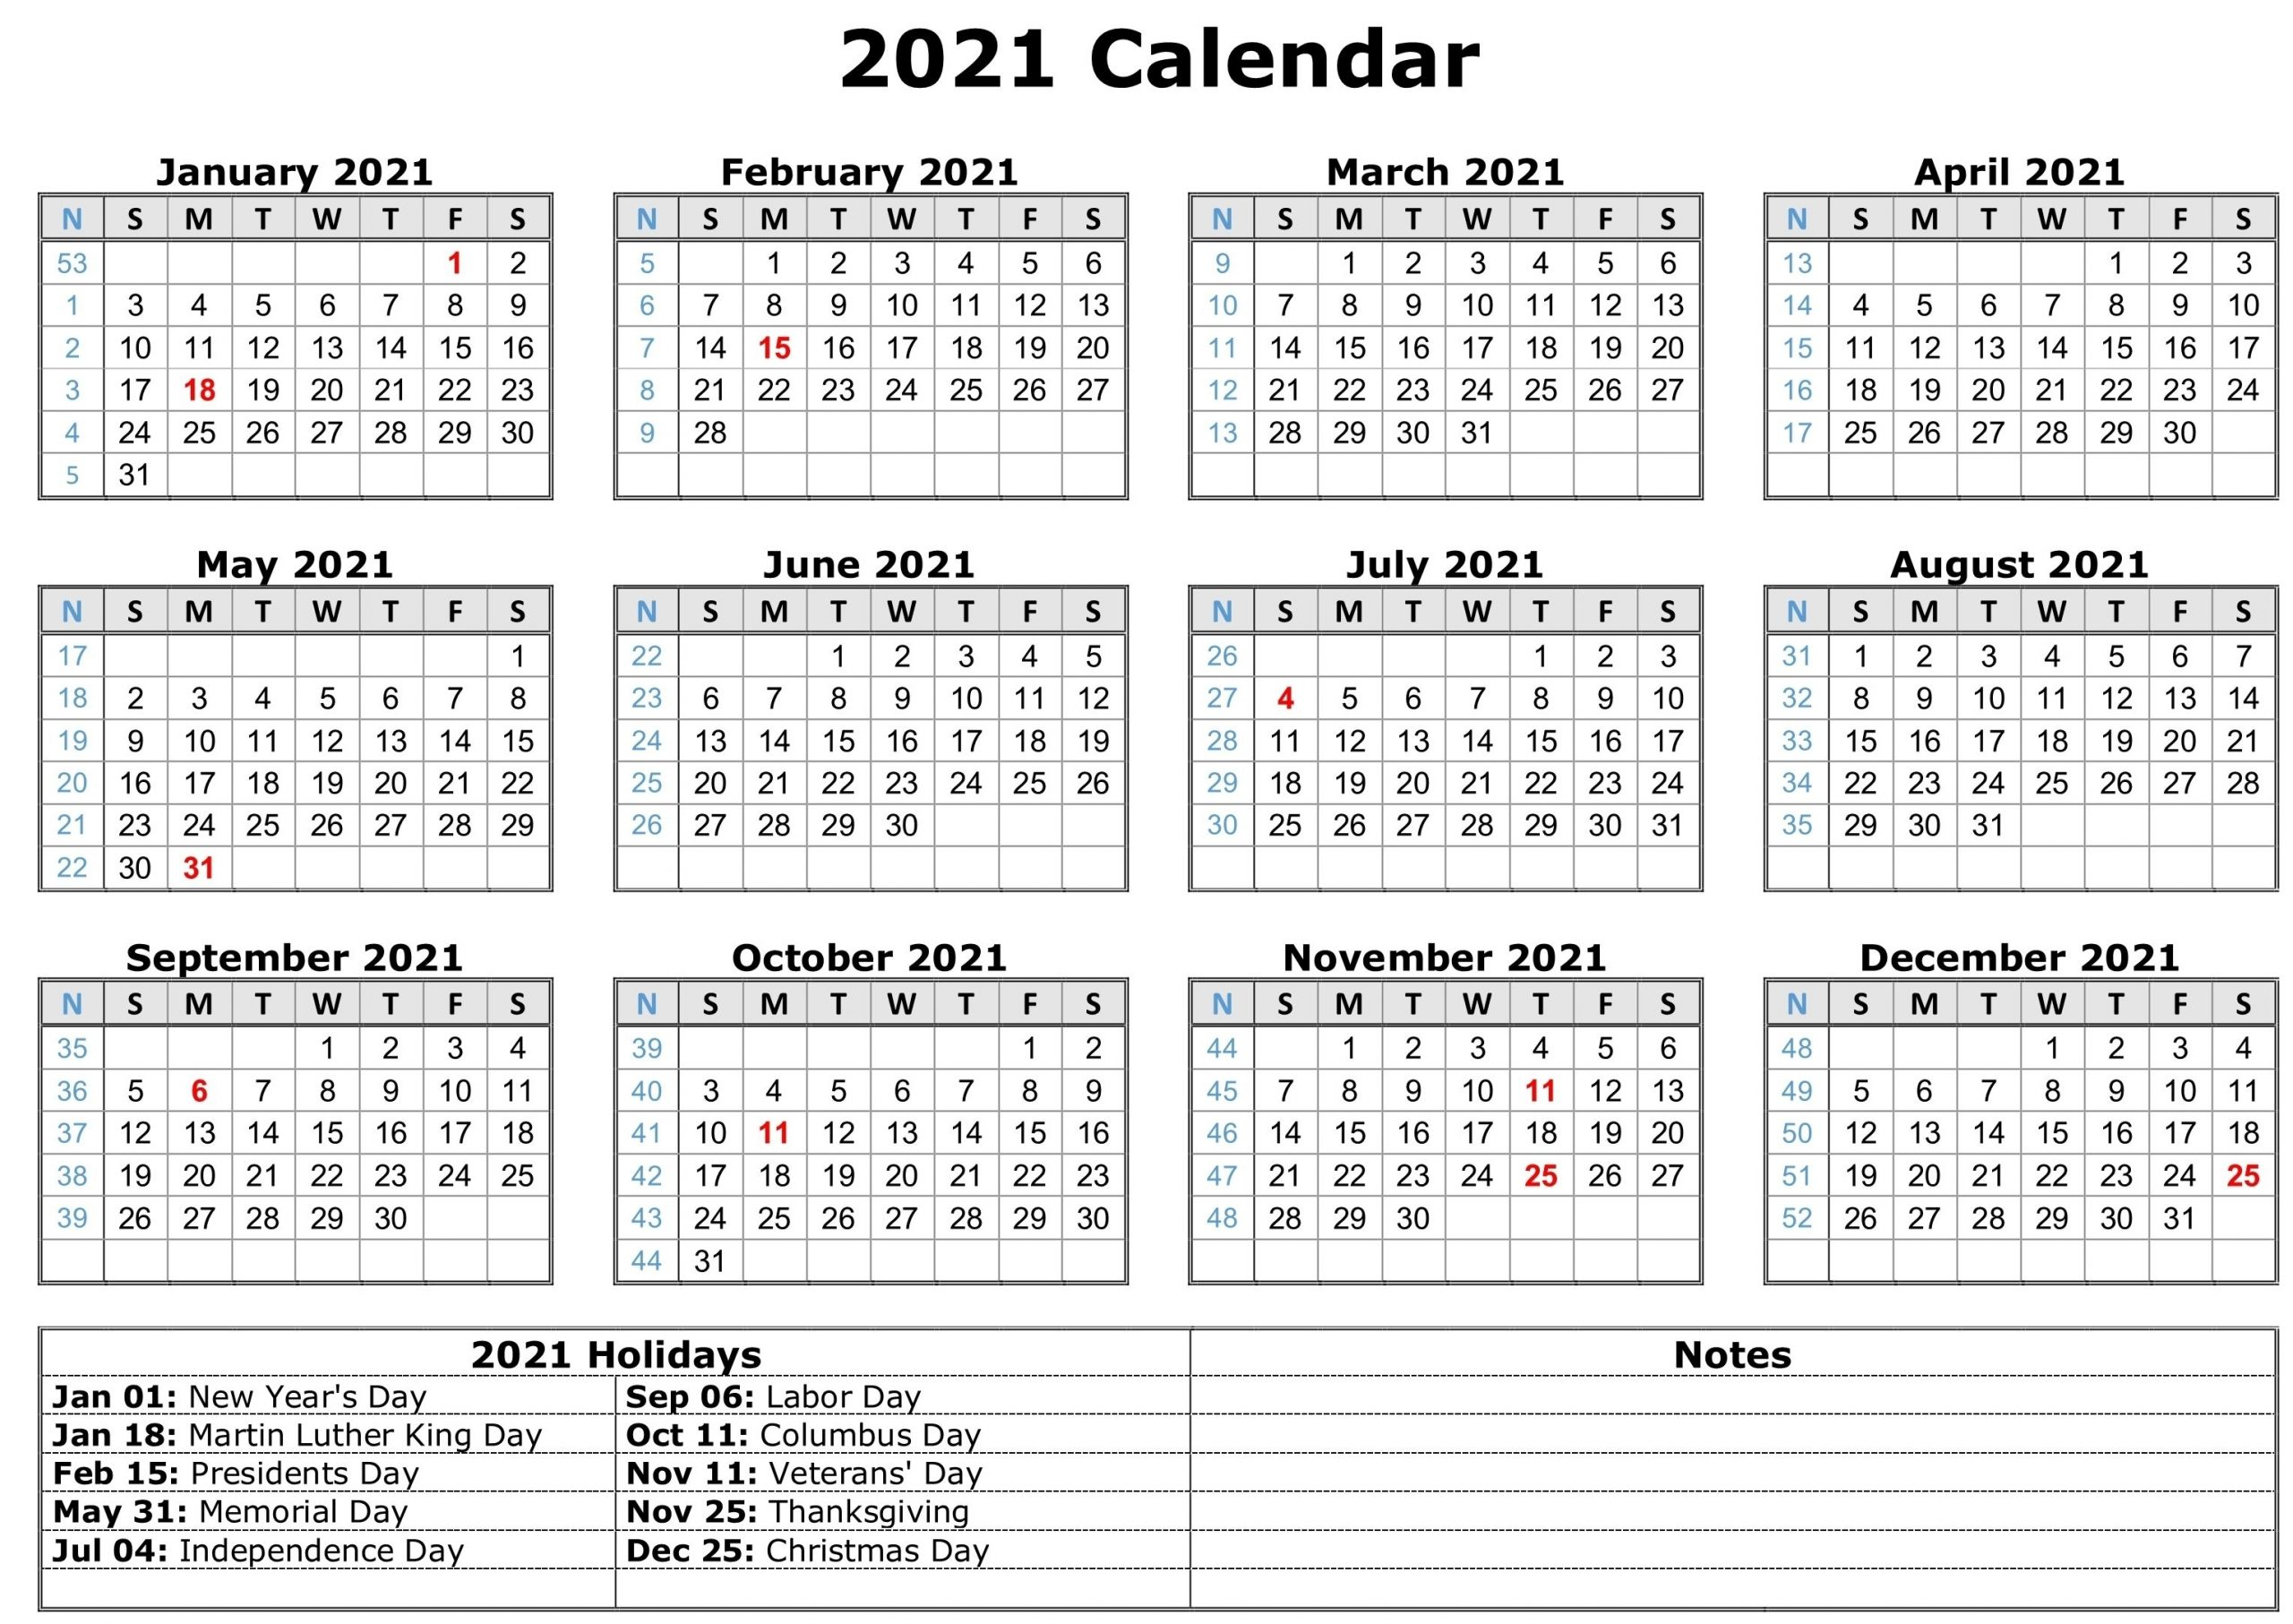 Get Print Free 2021 Calendar Without Downloading